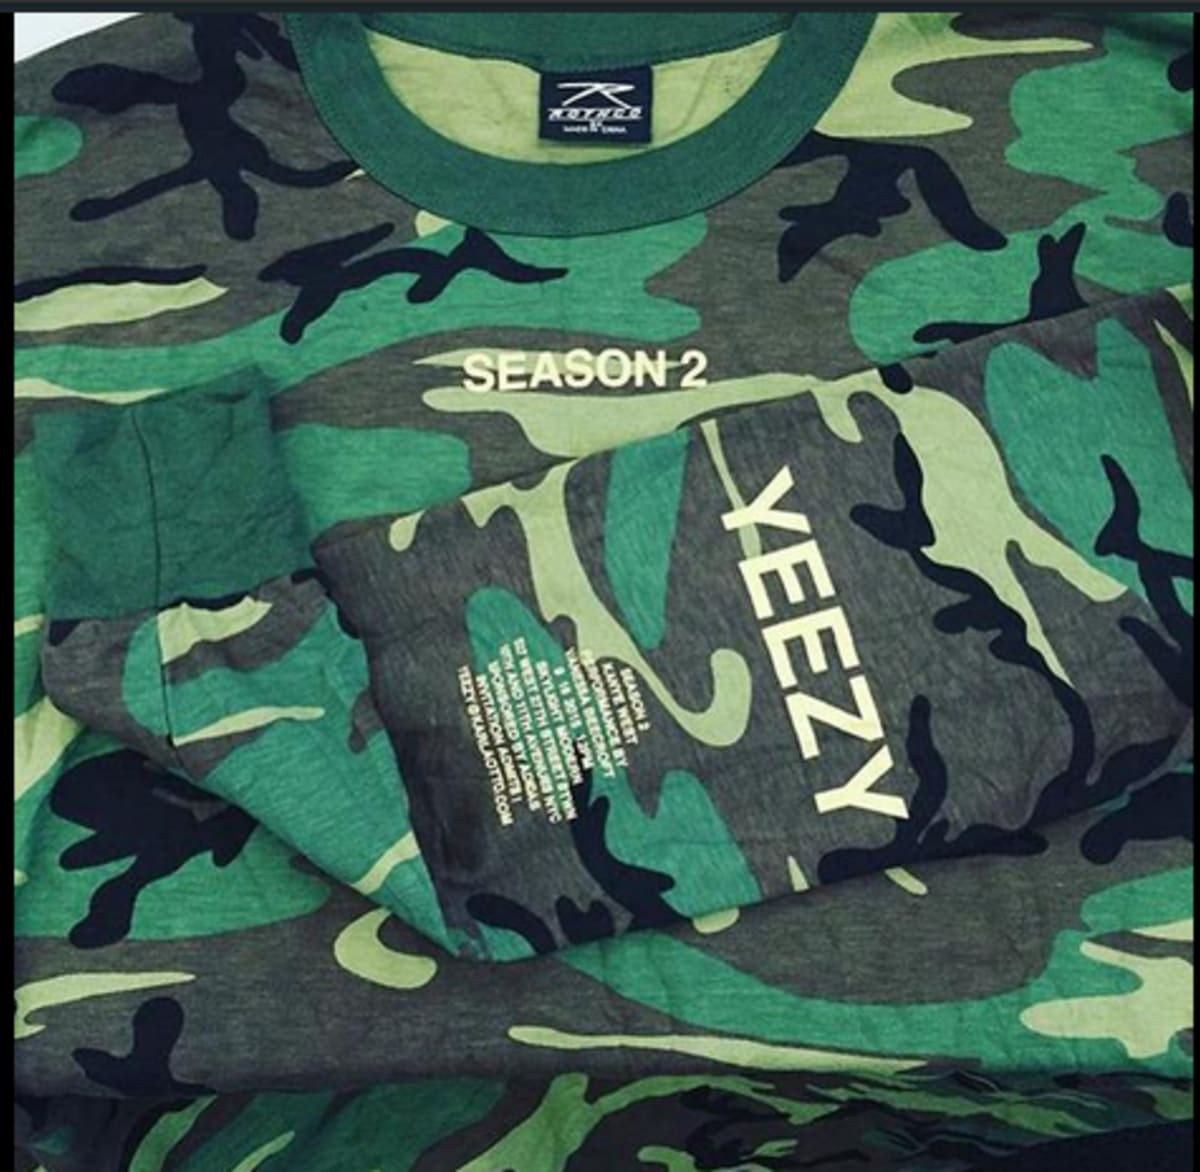 Kanye wests yeezy season 2 invites are printed on 13 camo long kanye wests yeezy season 2 invites are printed on 13 camo long sleeve t shirts complex stopboris Gallery